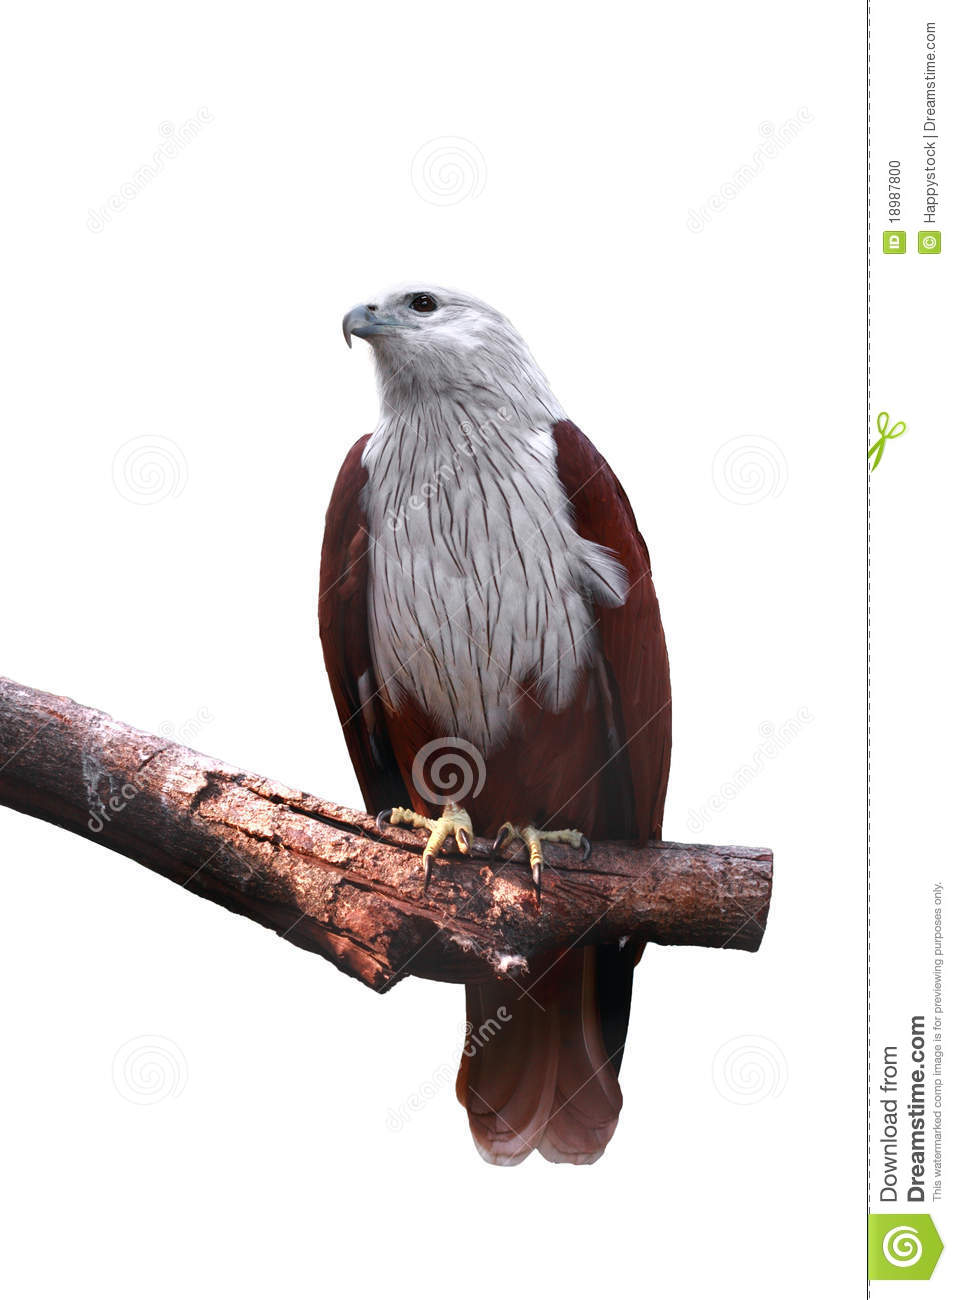 Brahminy Kite Stock Photo.